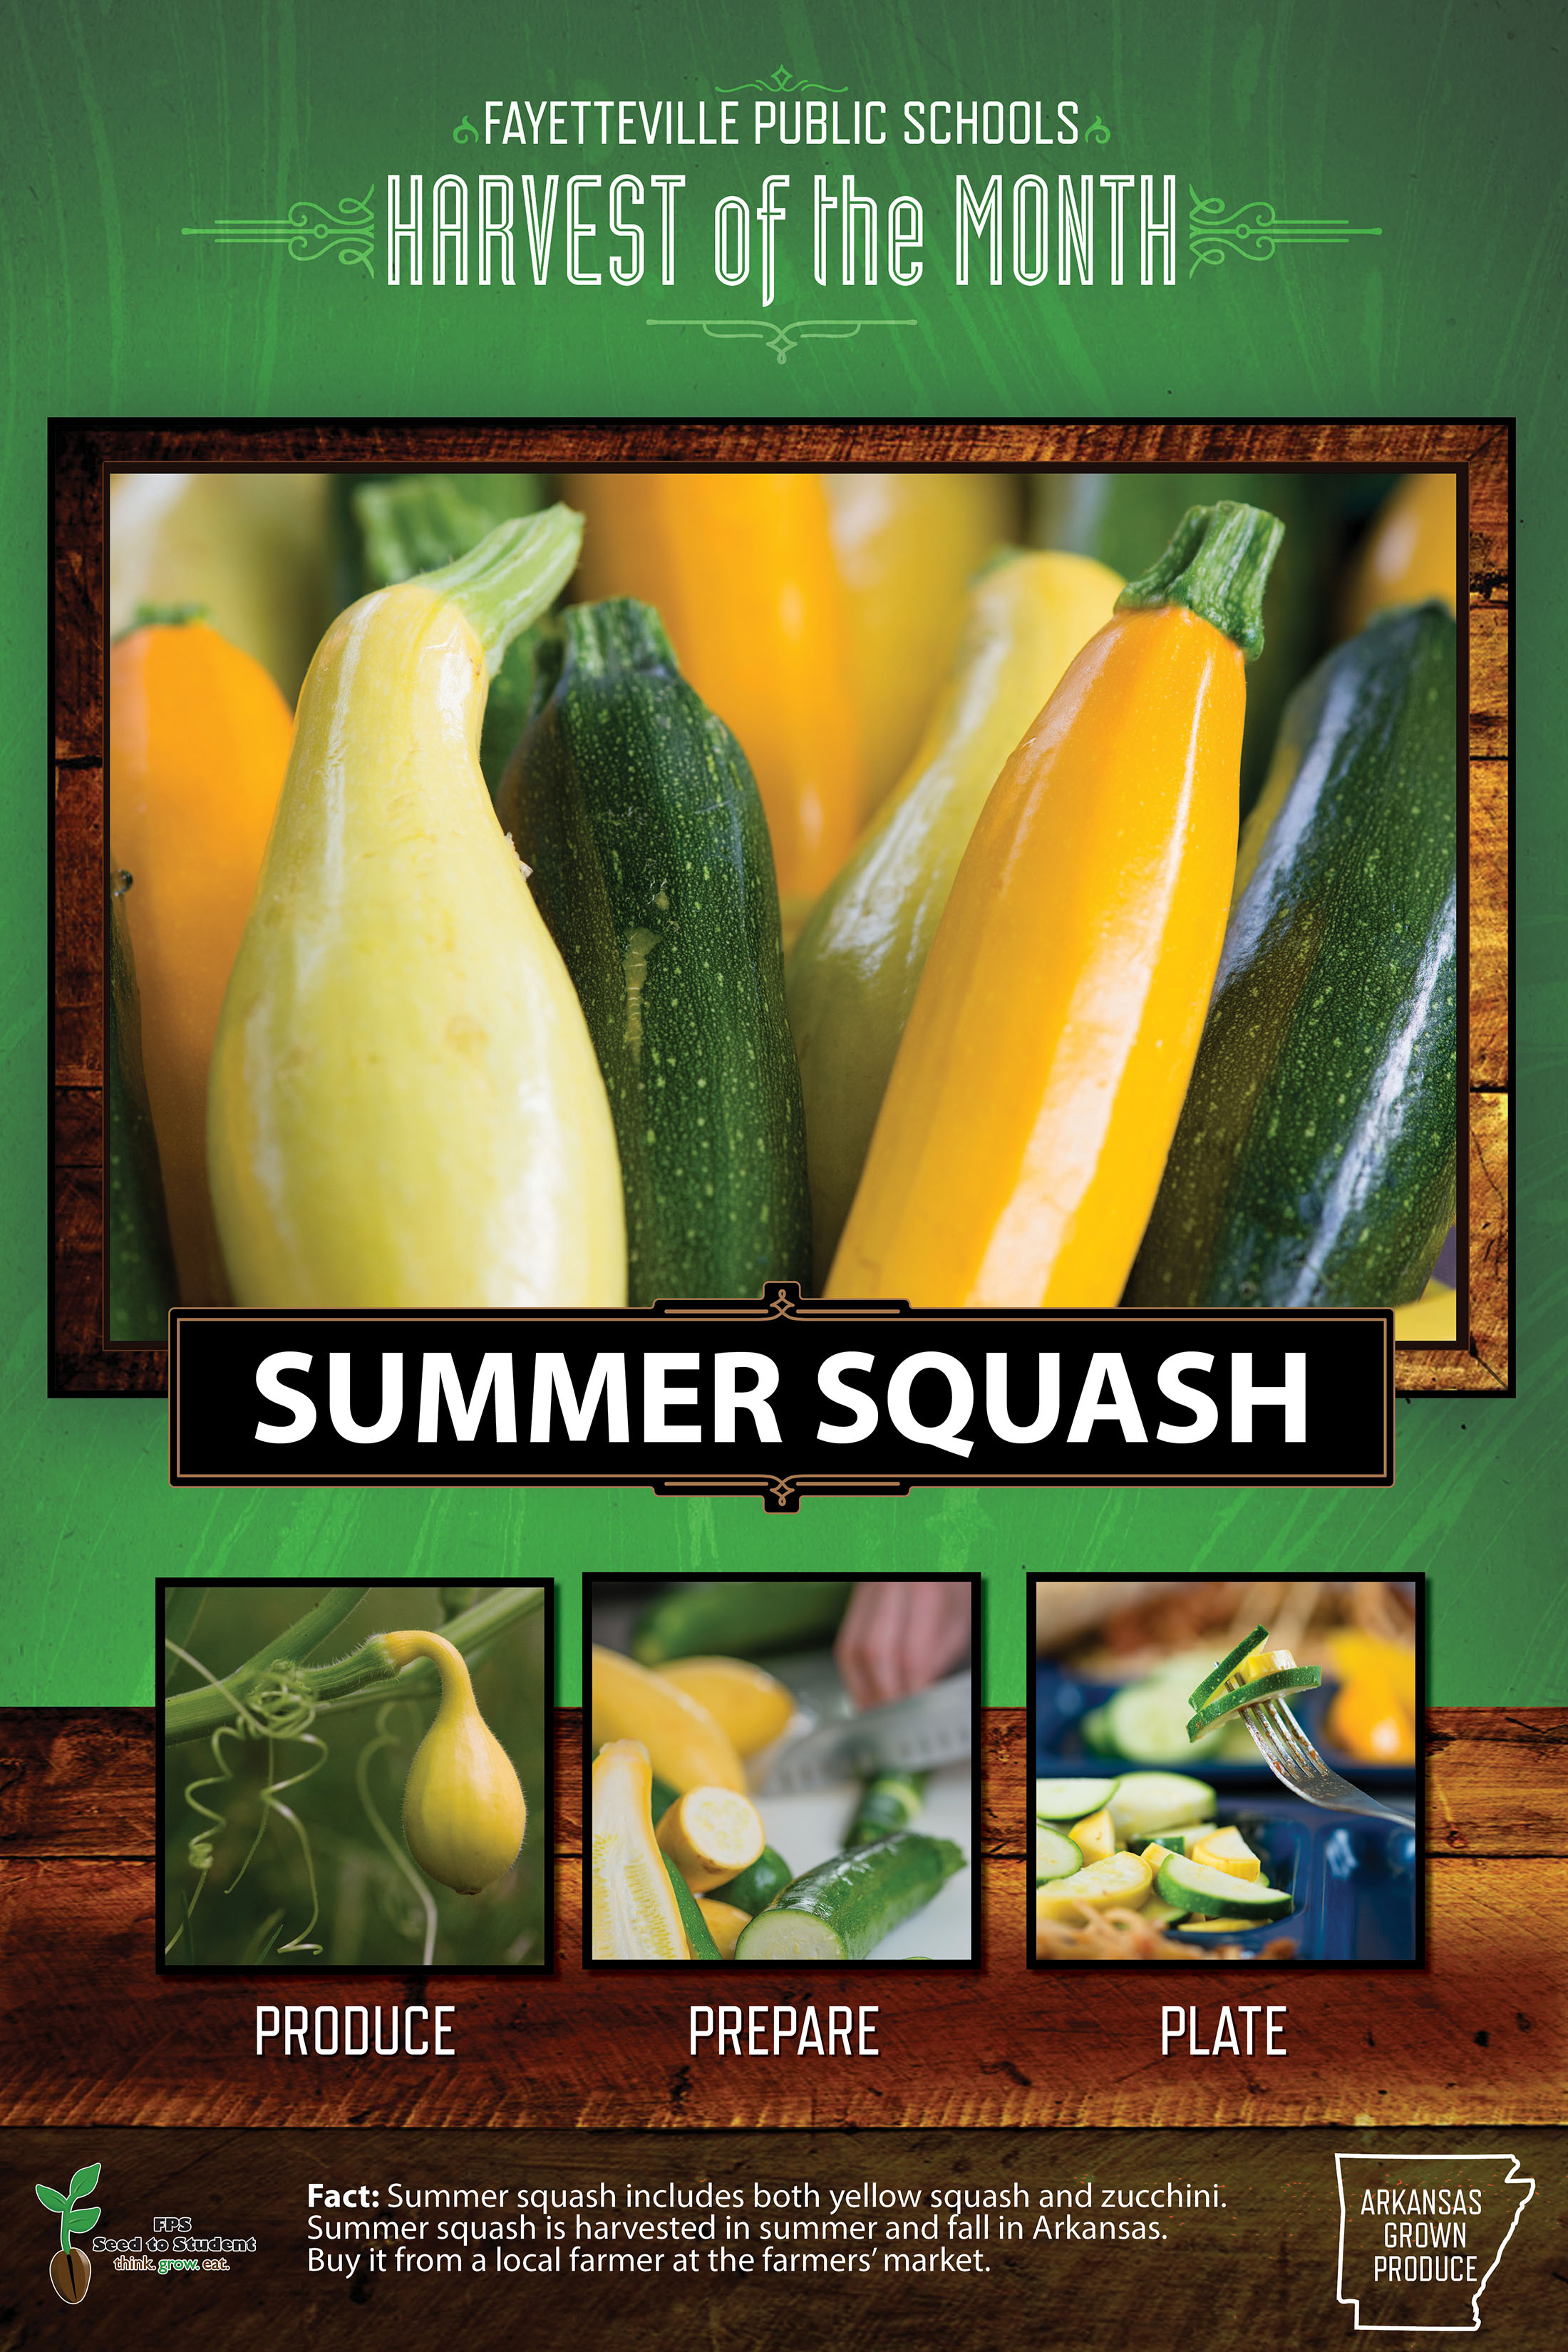 FPS Harvest of the month is Summer Squash